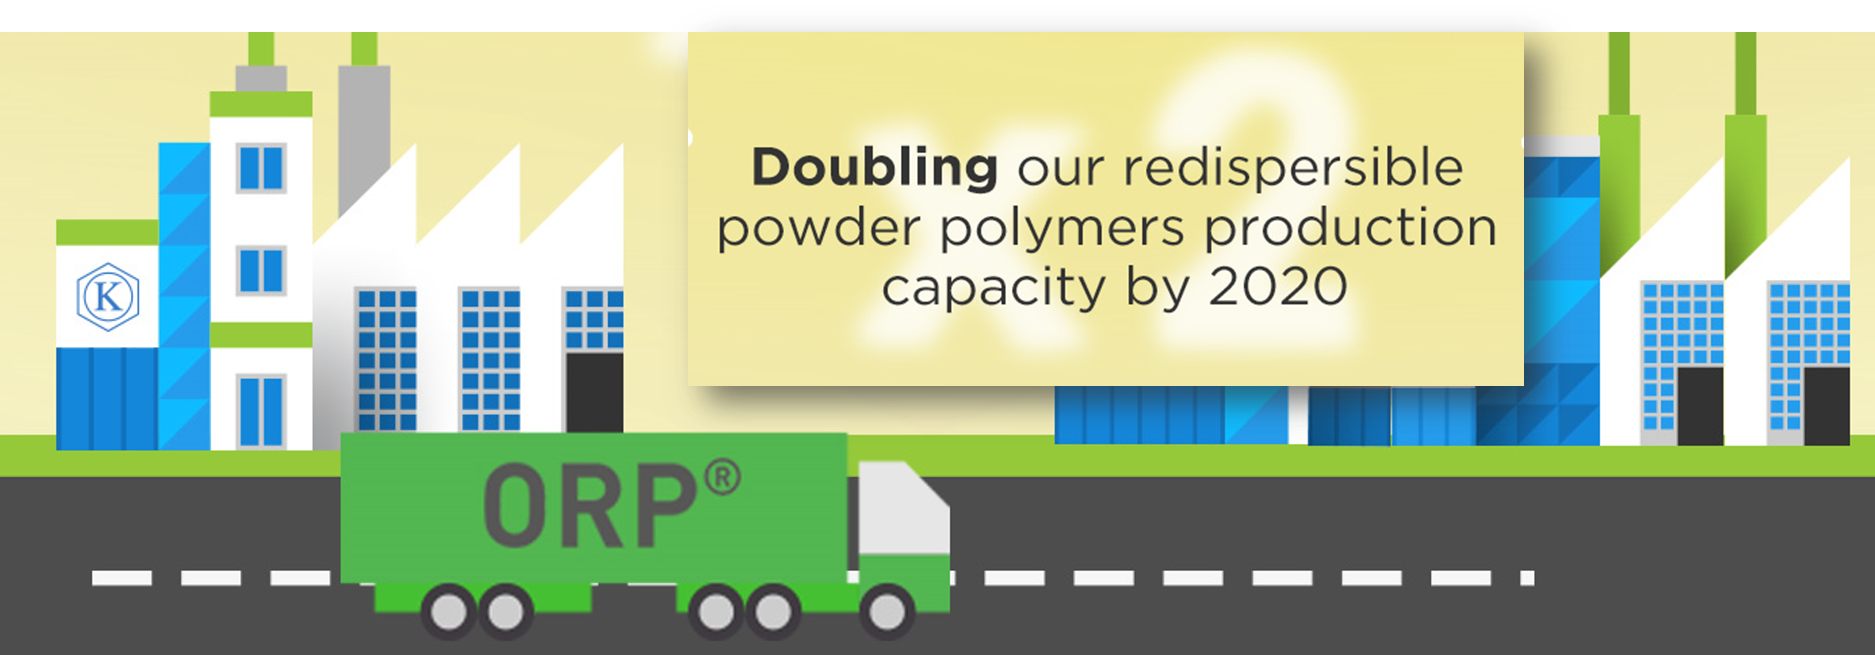 Doubling our RDP production capacity